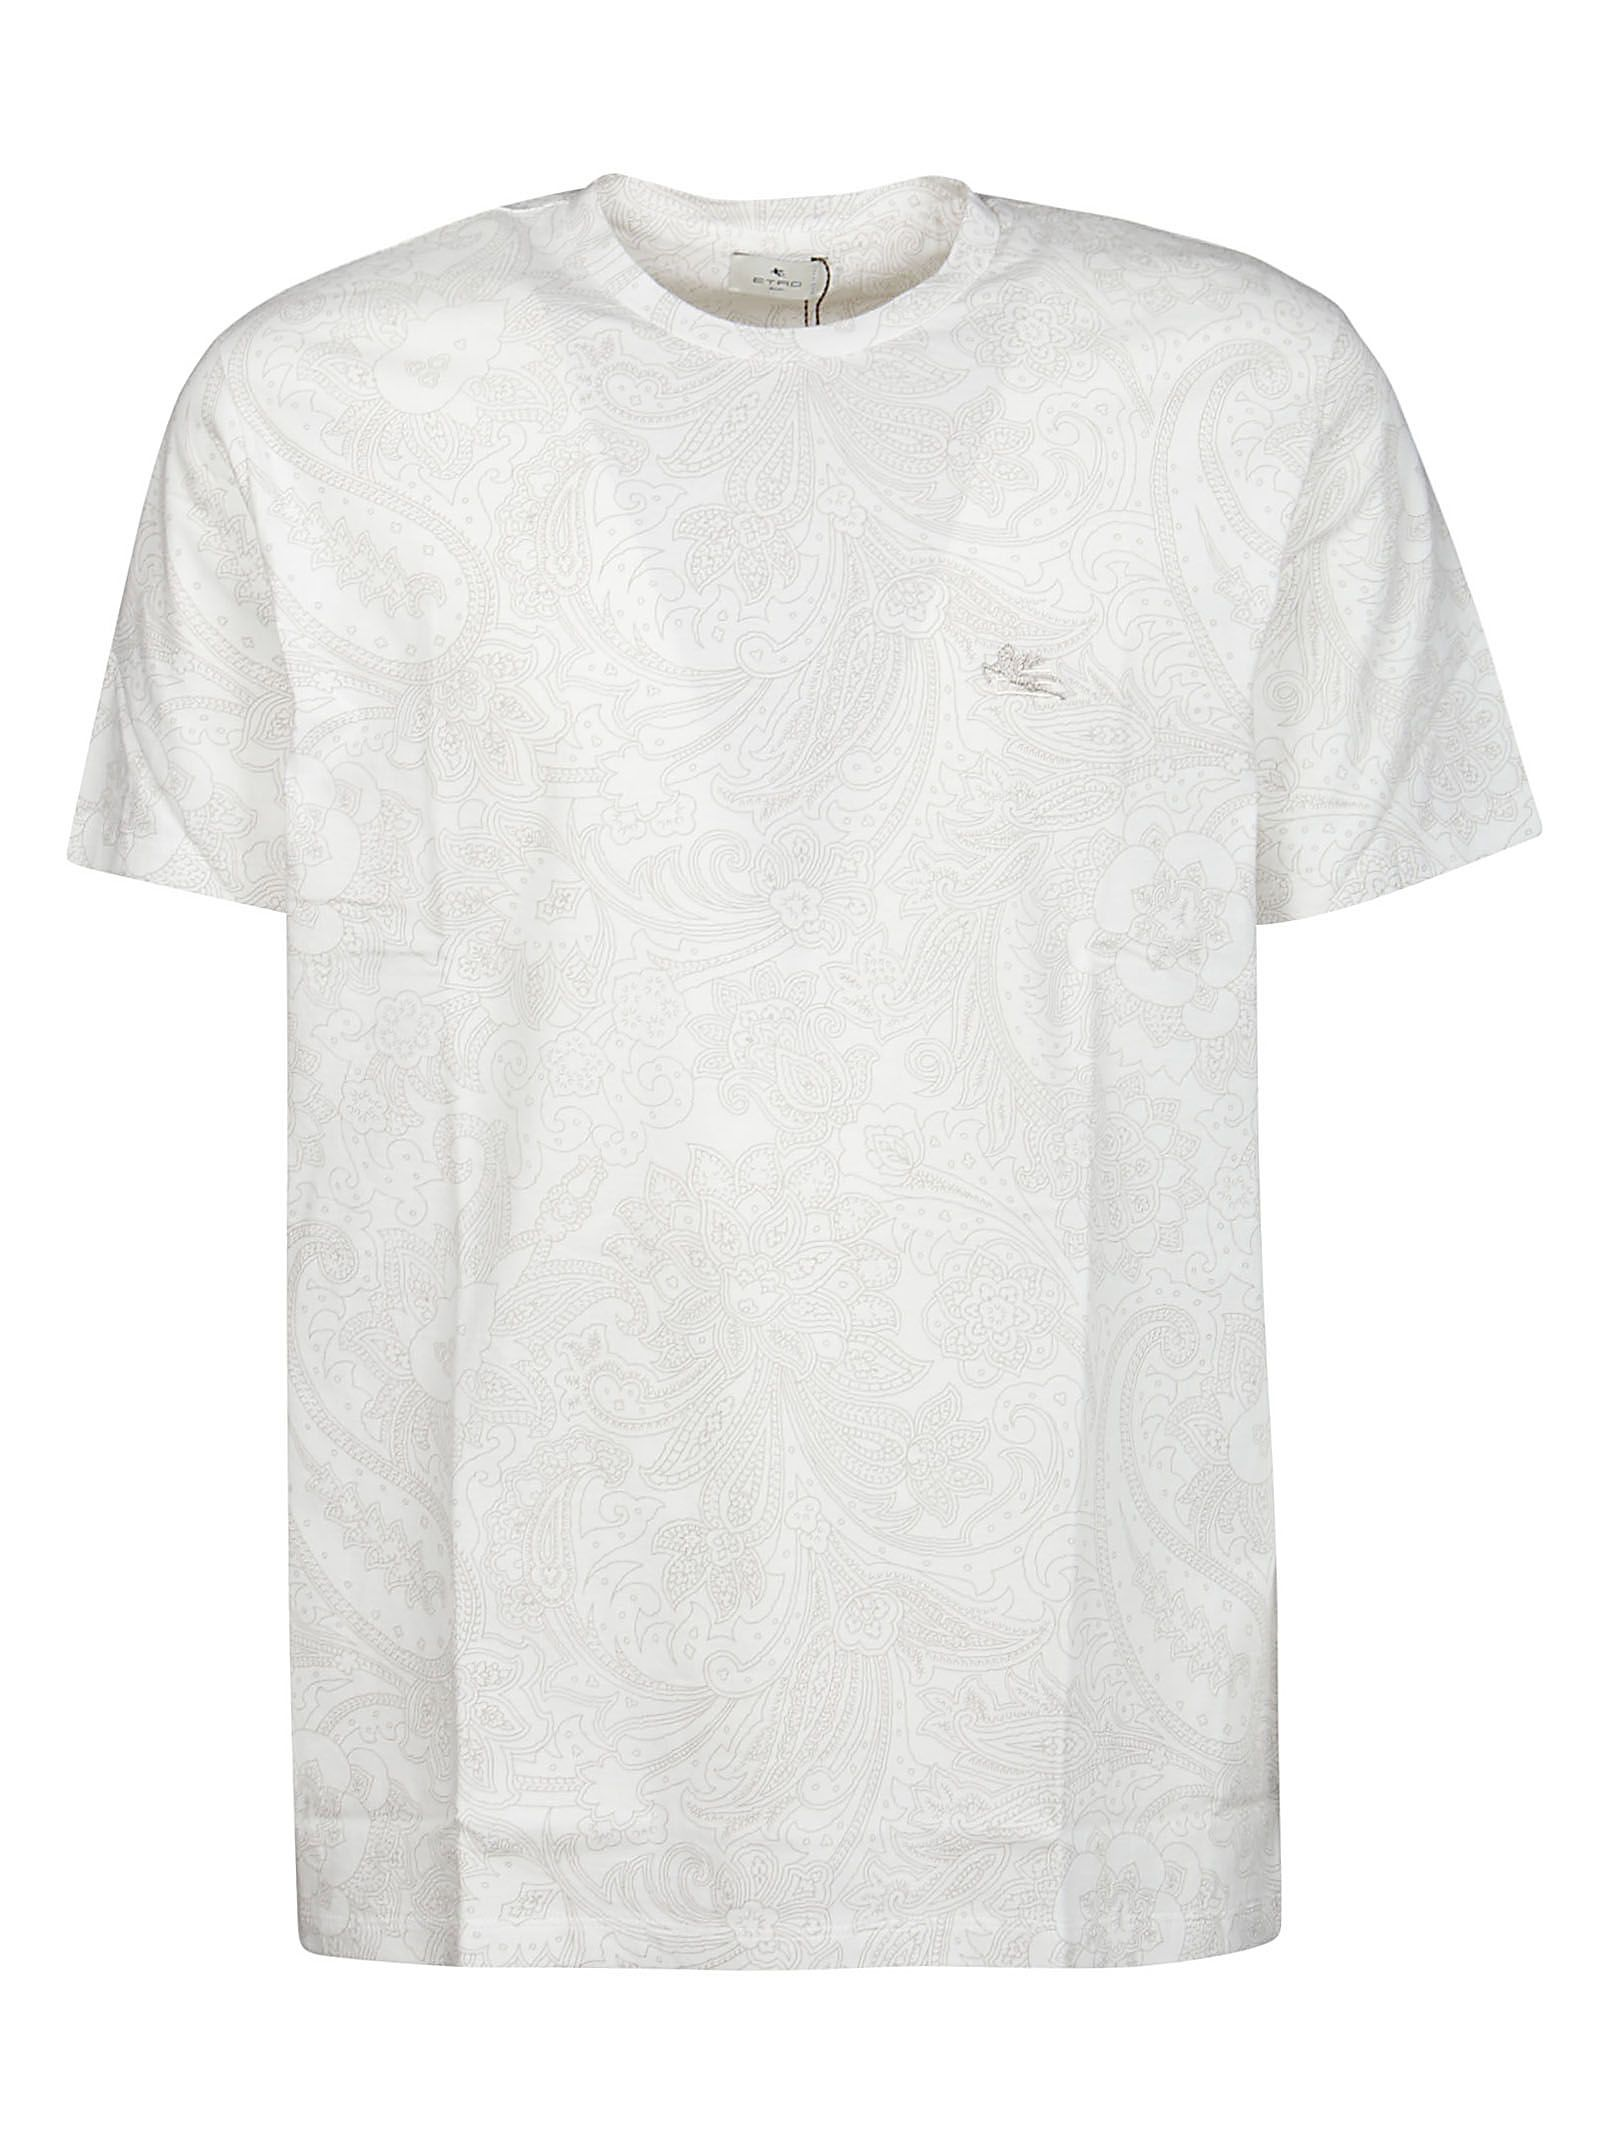 Etro Cottons ETRO MEN'S 1Y02099800991 WHITE OTHER MATERIALS T-SHIRT